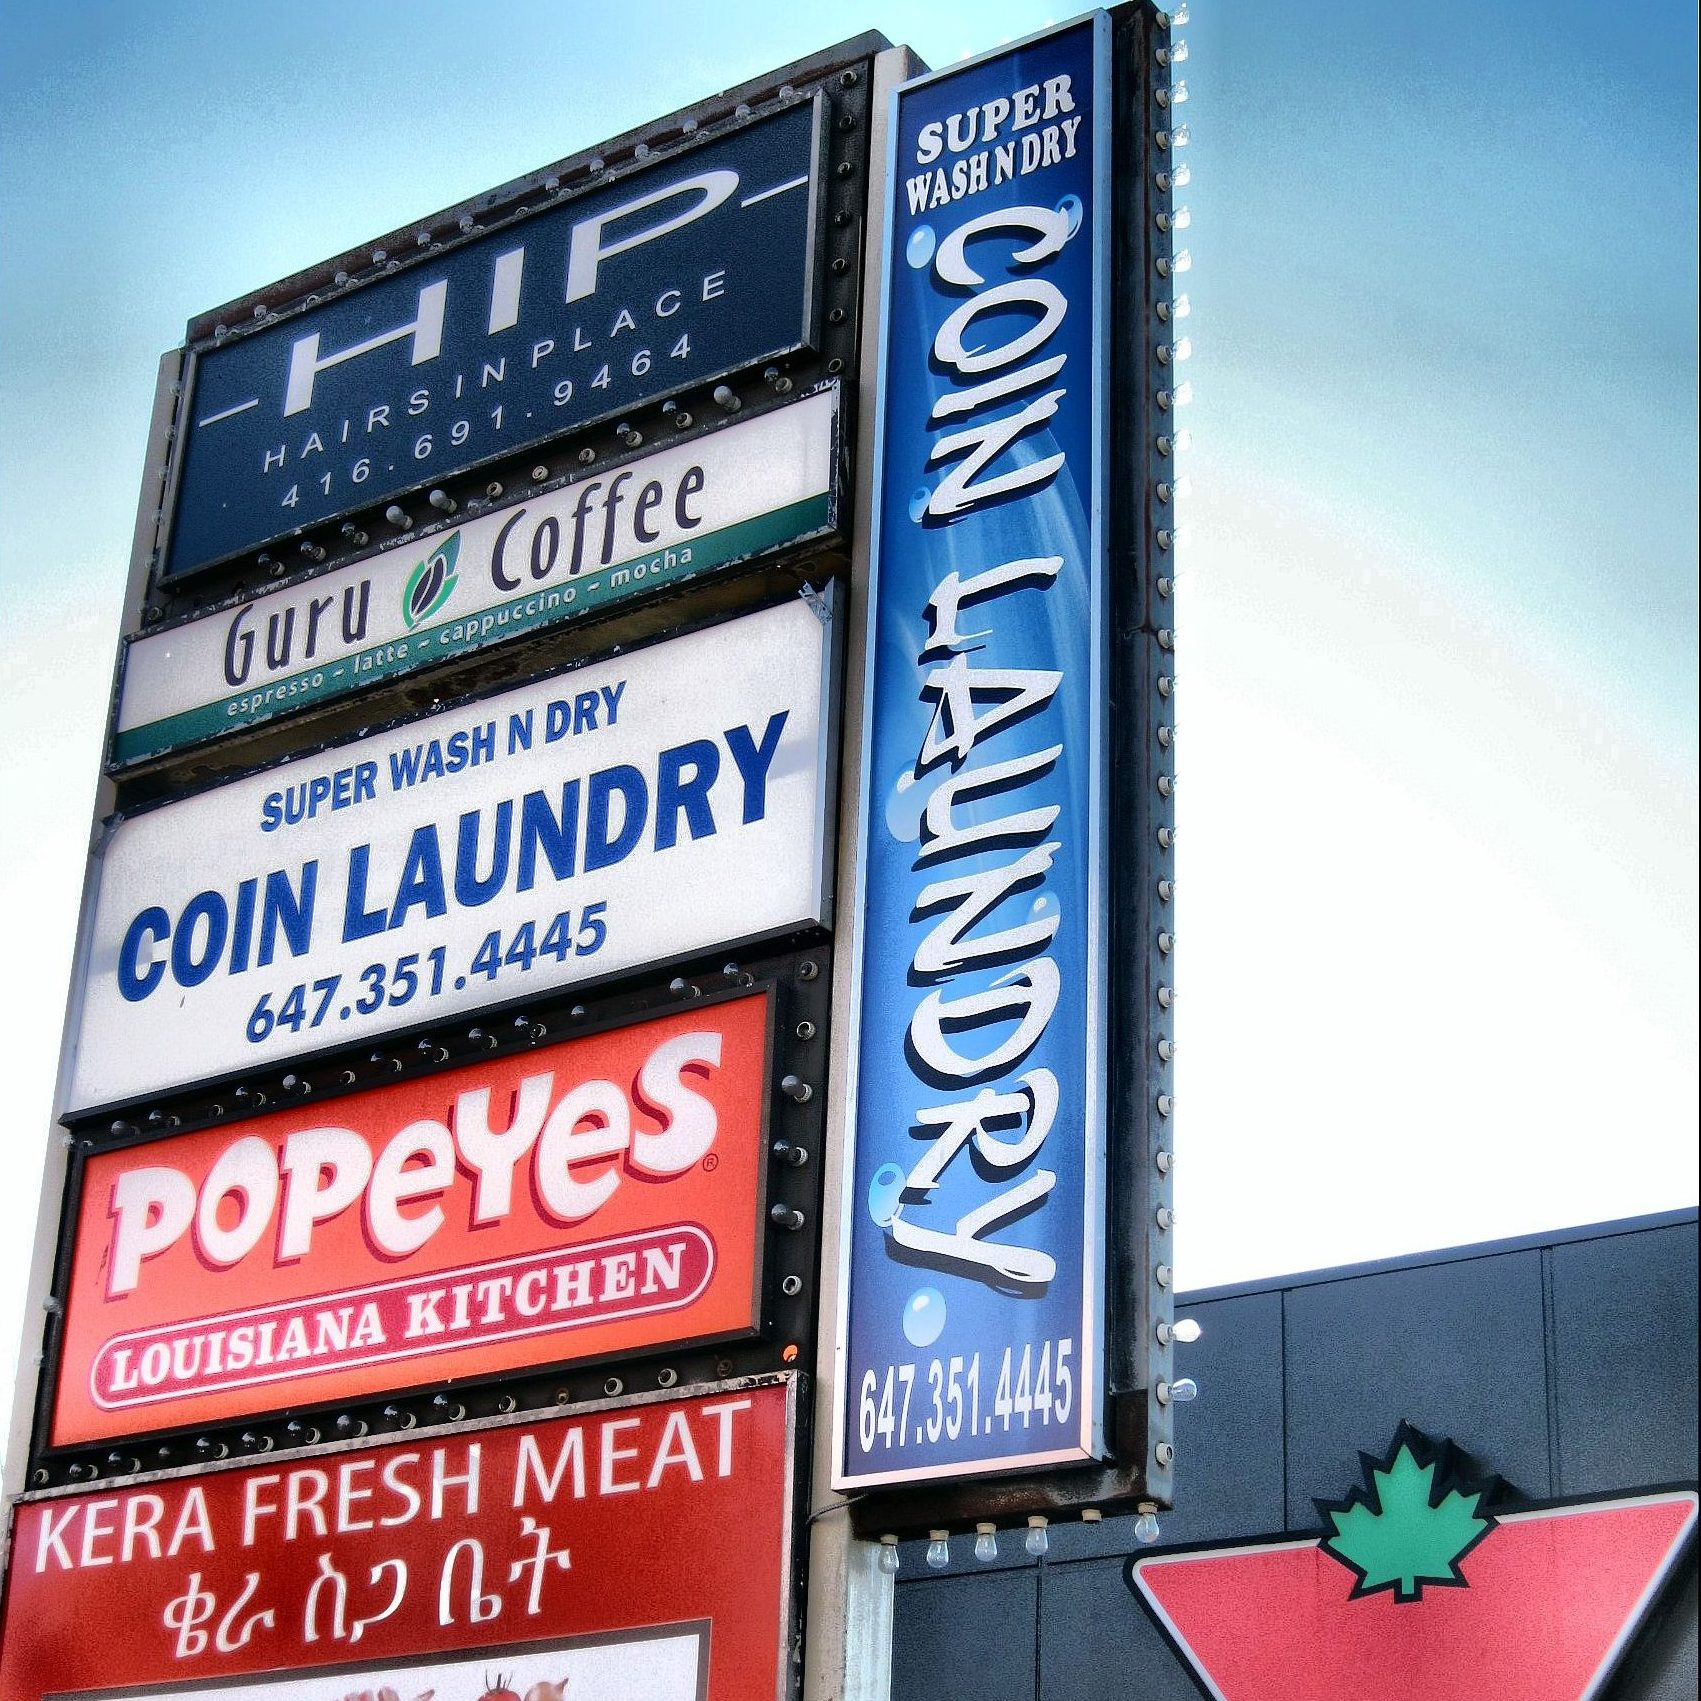 Super Wash N Dry Coin Laundry